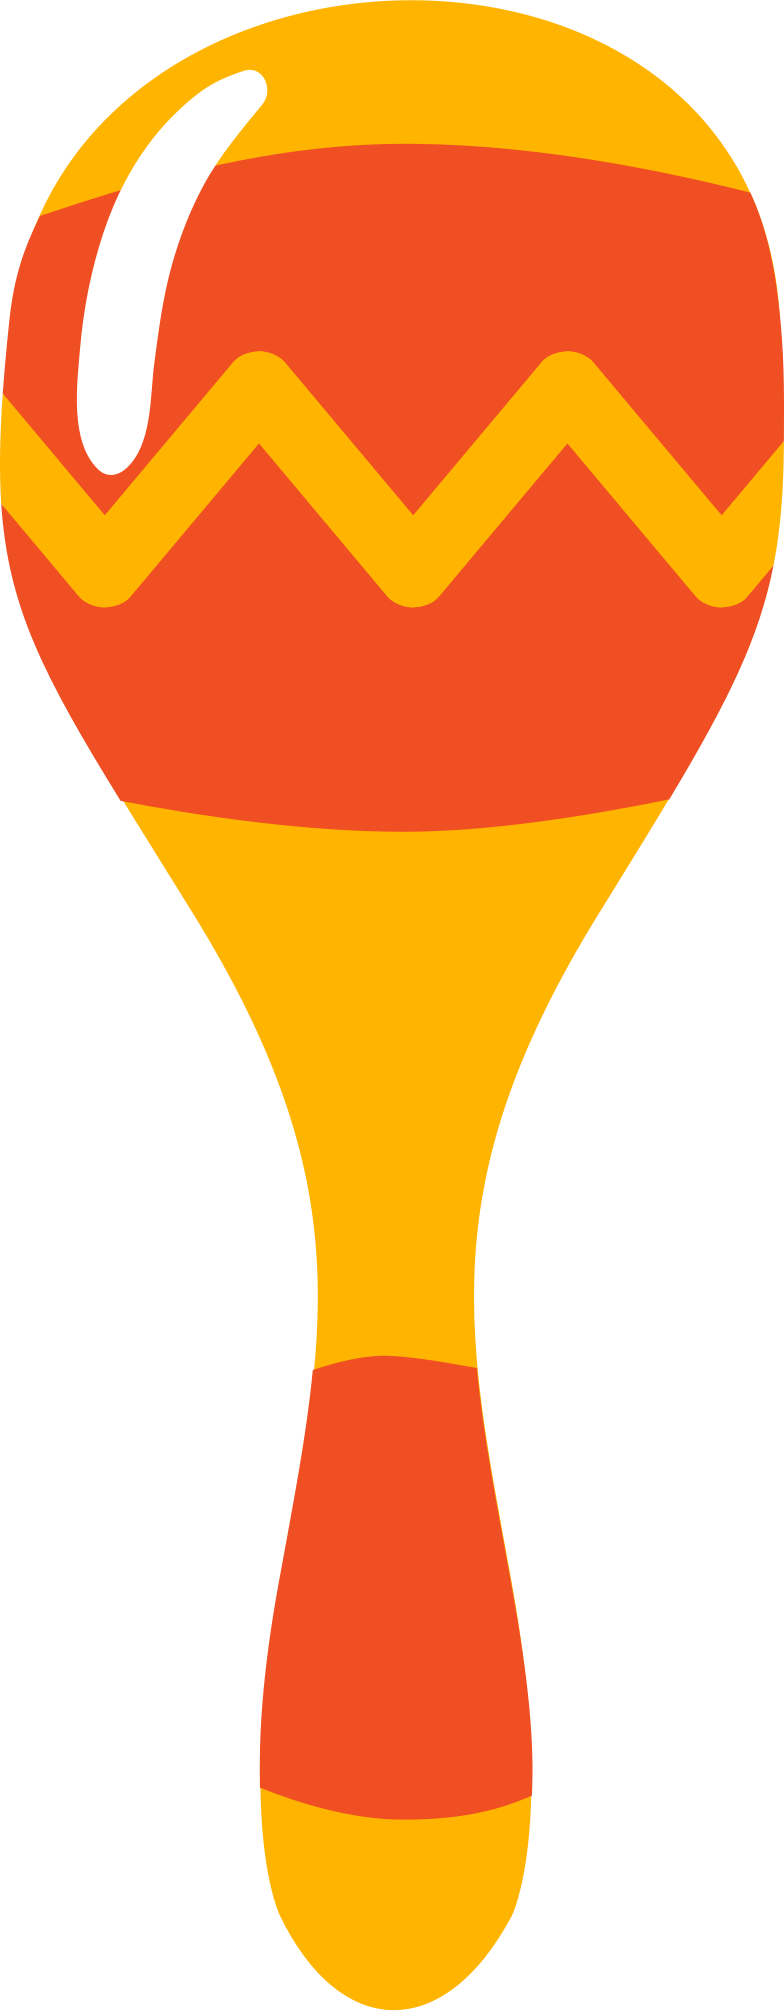 maracas Clipart illustration in PNG, SVG